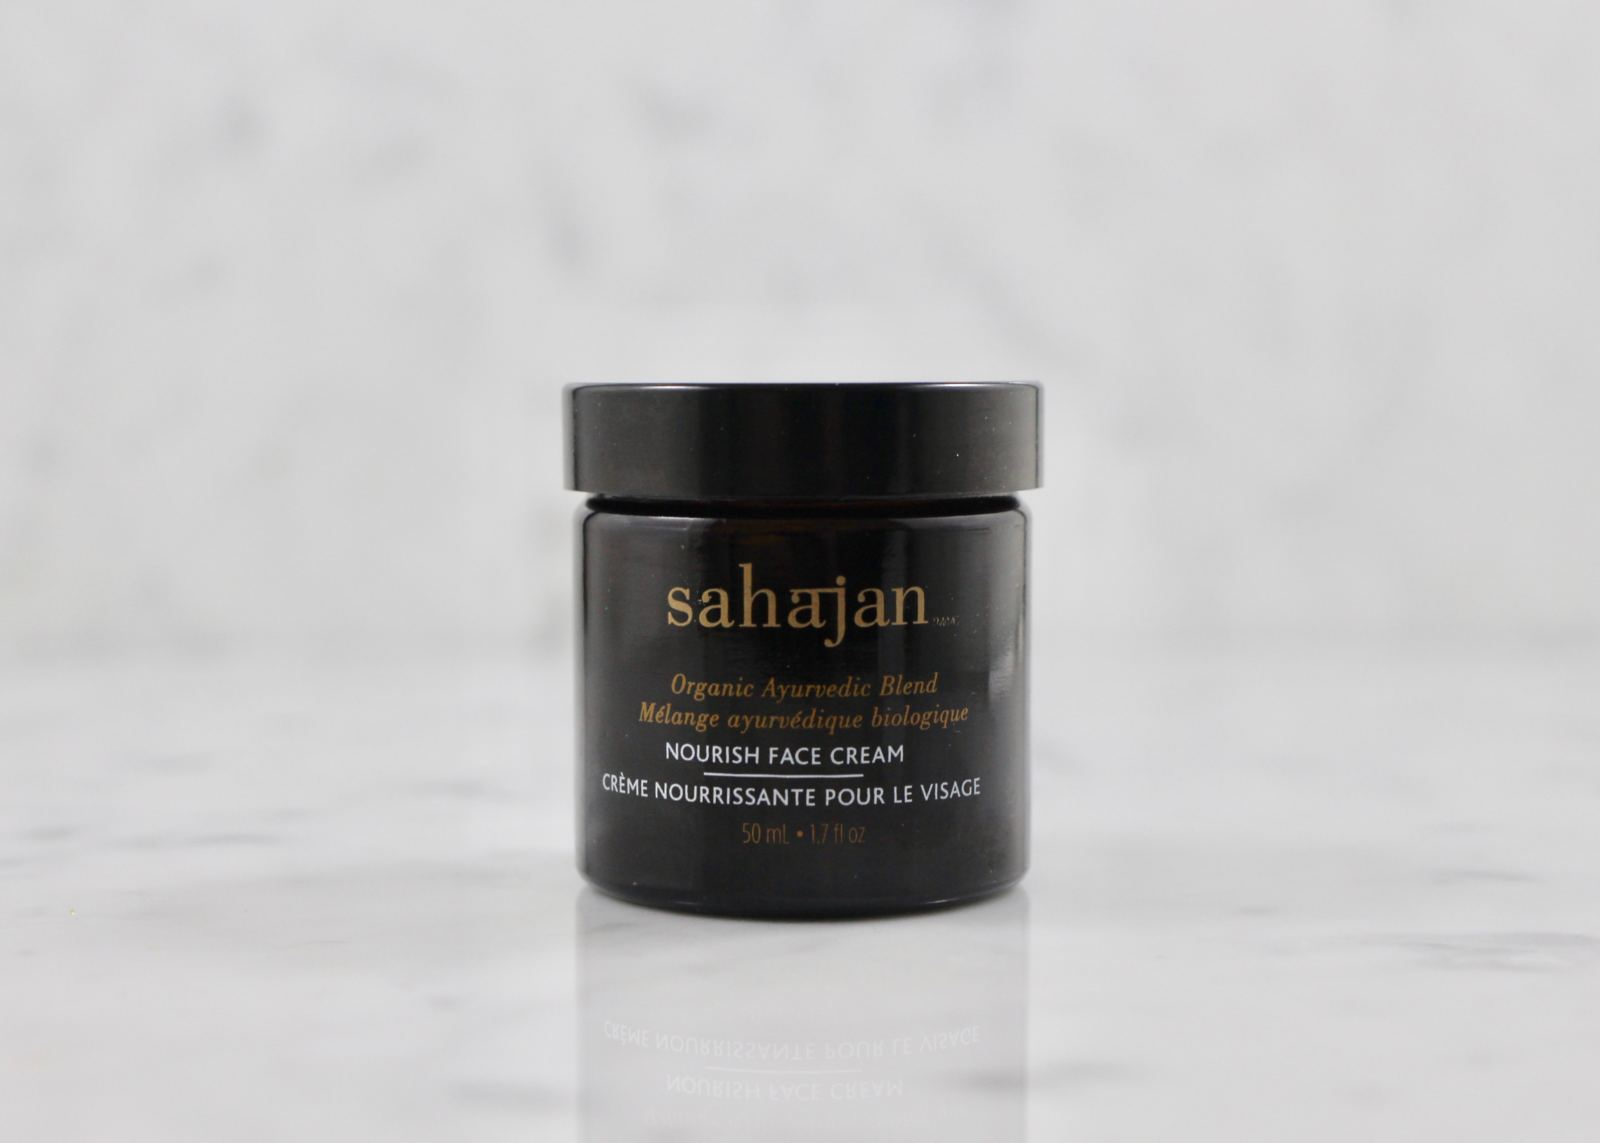 Brand Review: Sahajan